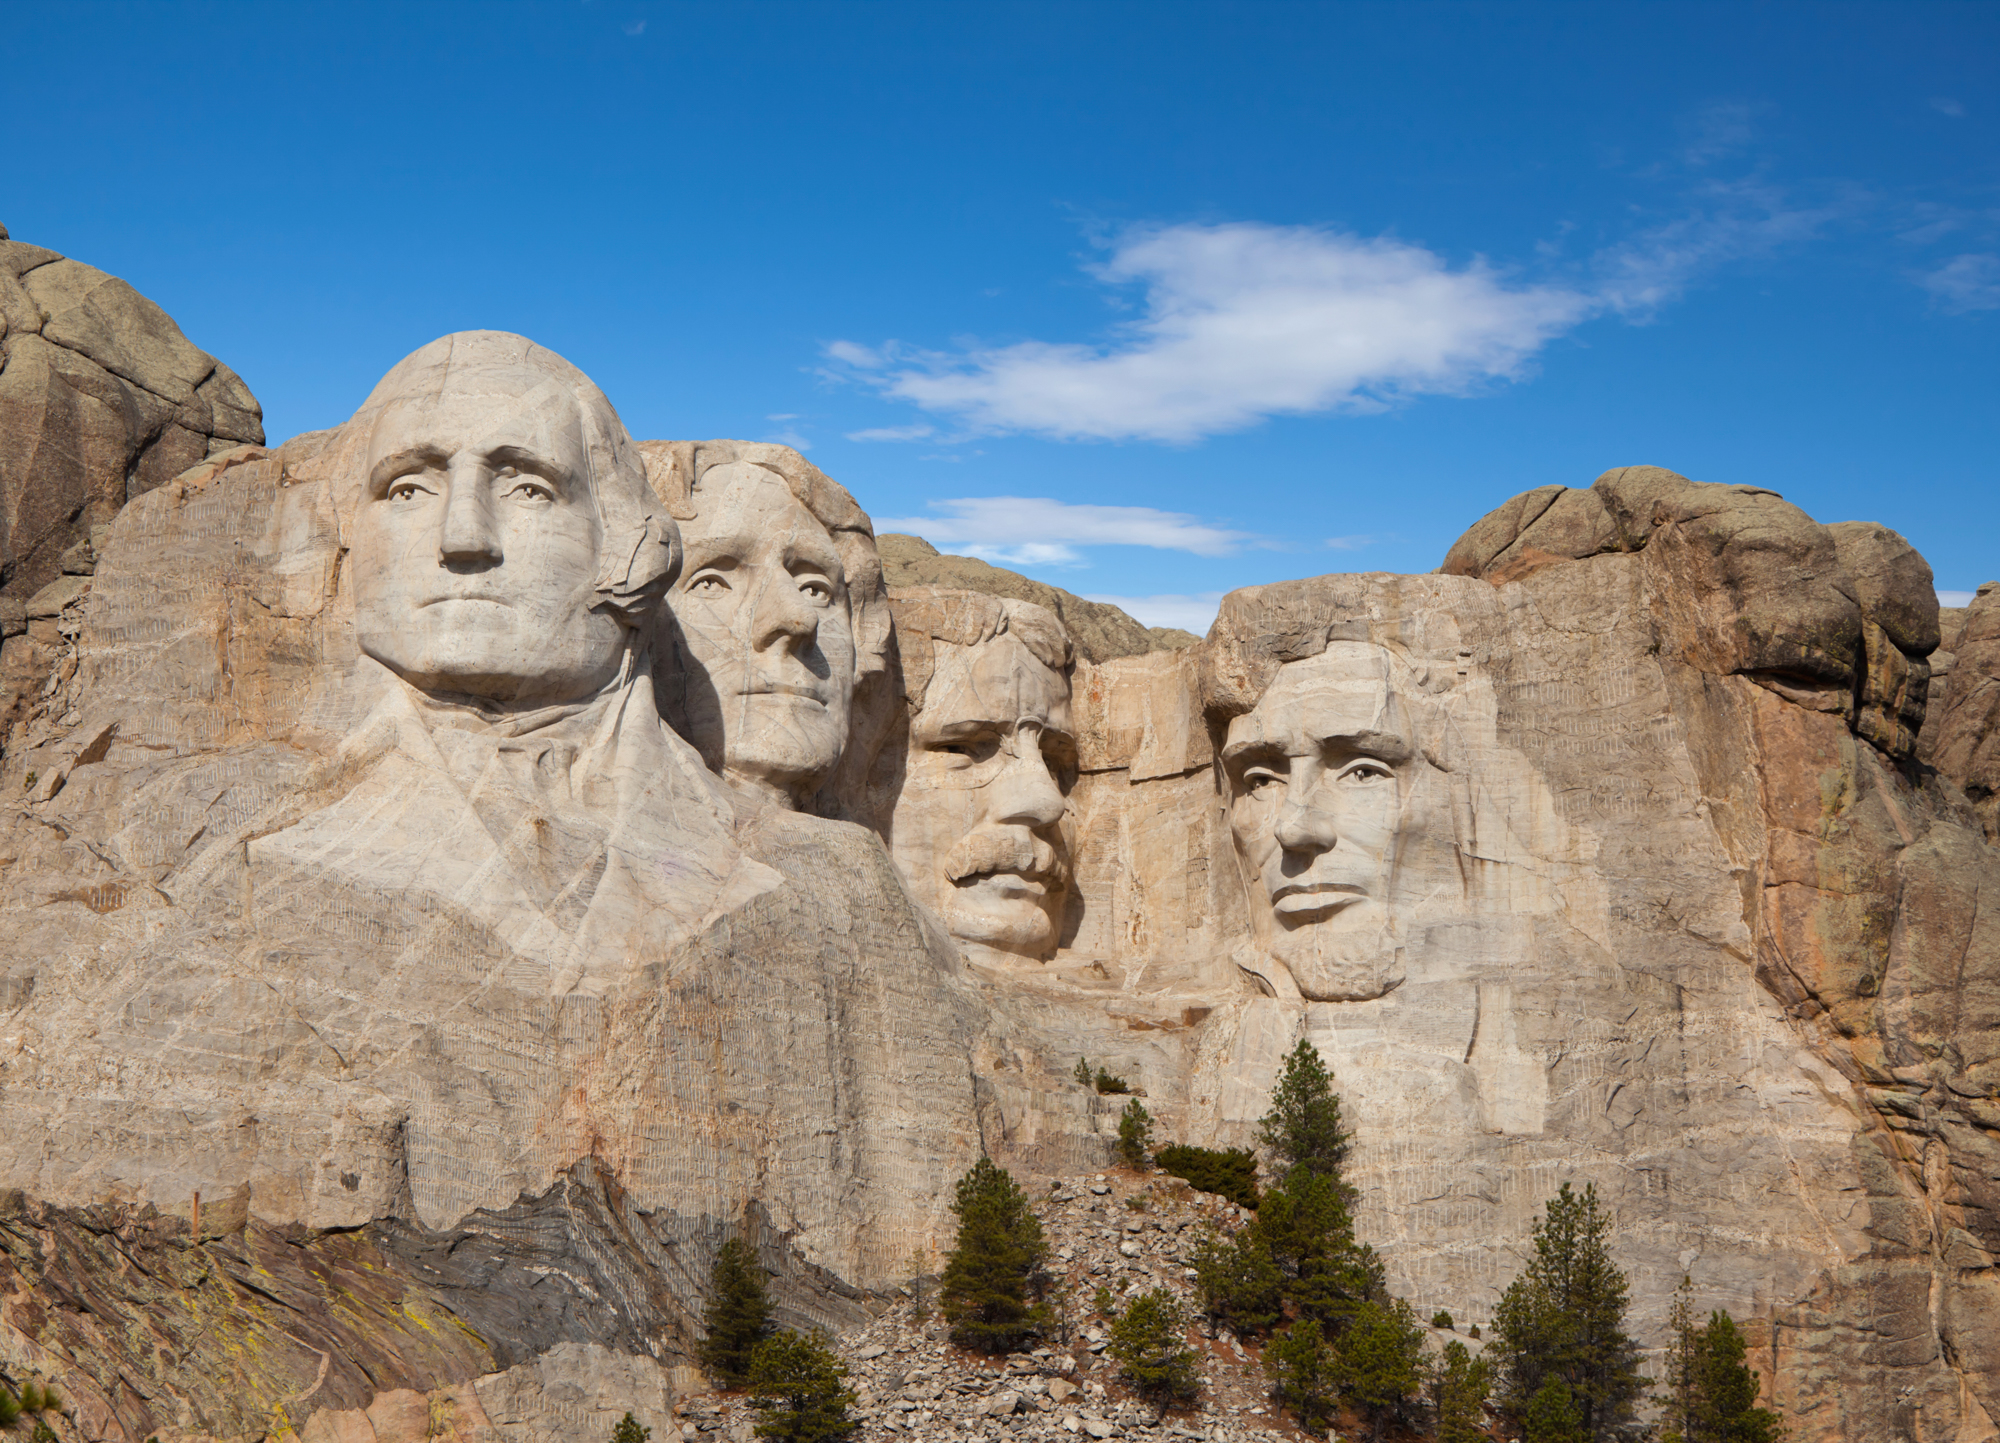 Vanocker Canyon Canpground - Attractions - Mount Rushmore